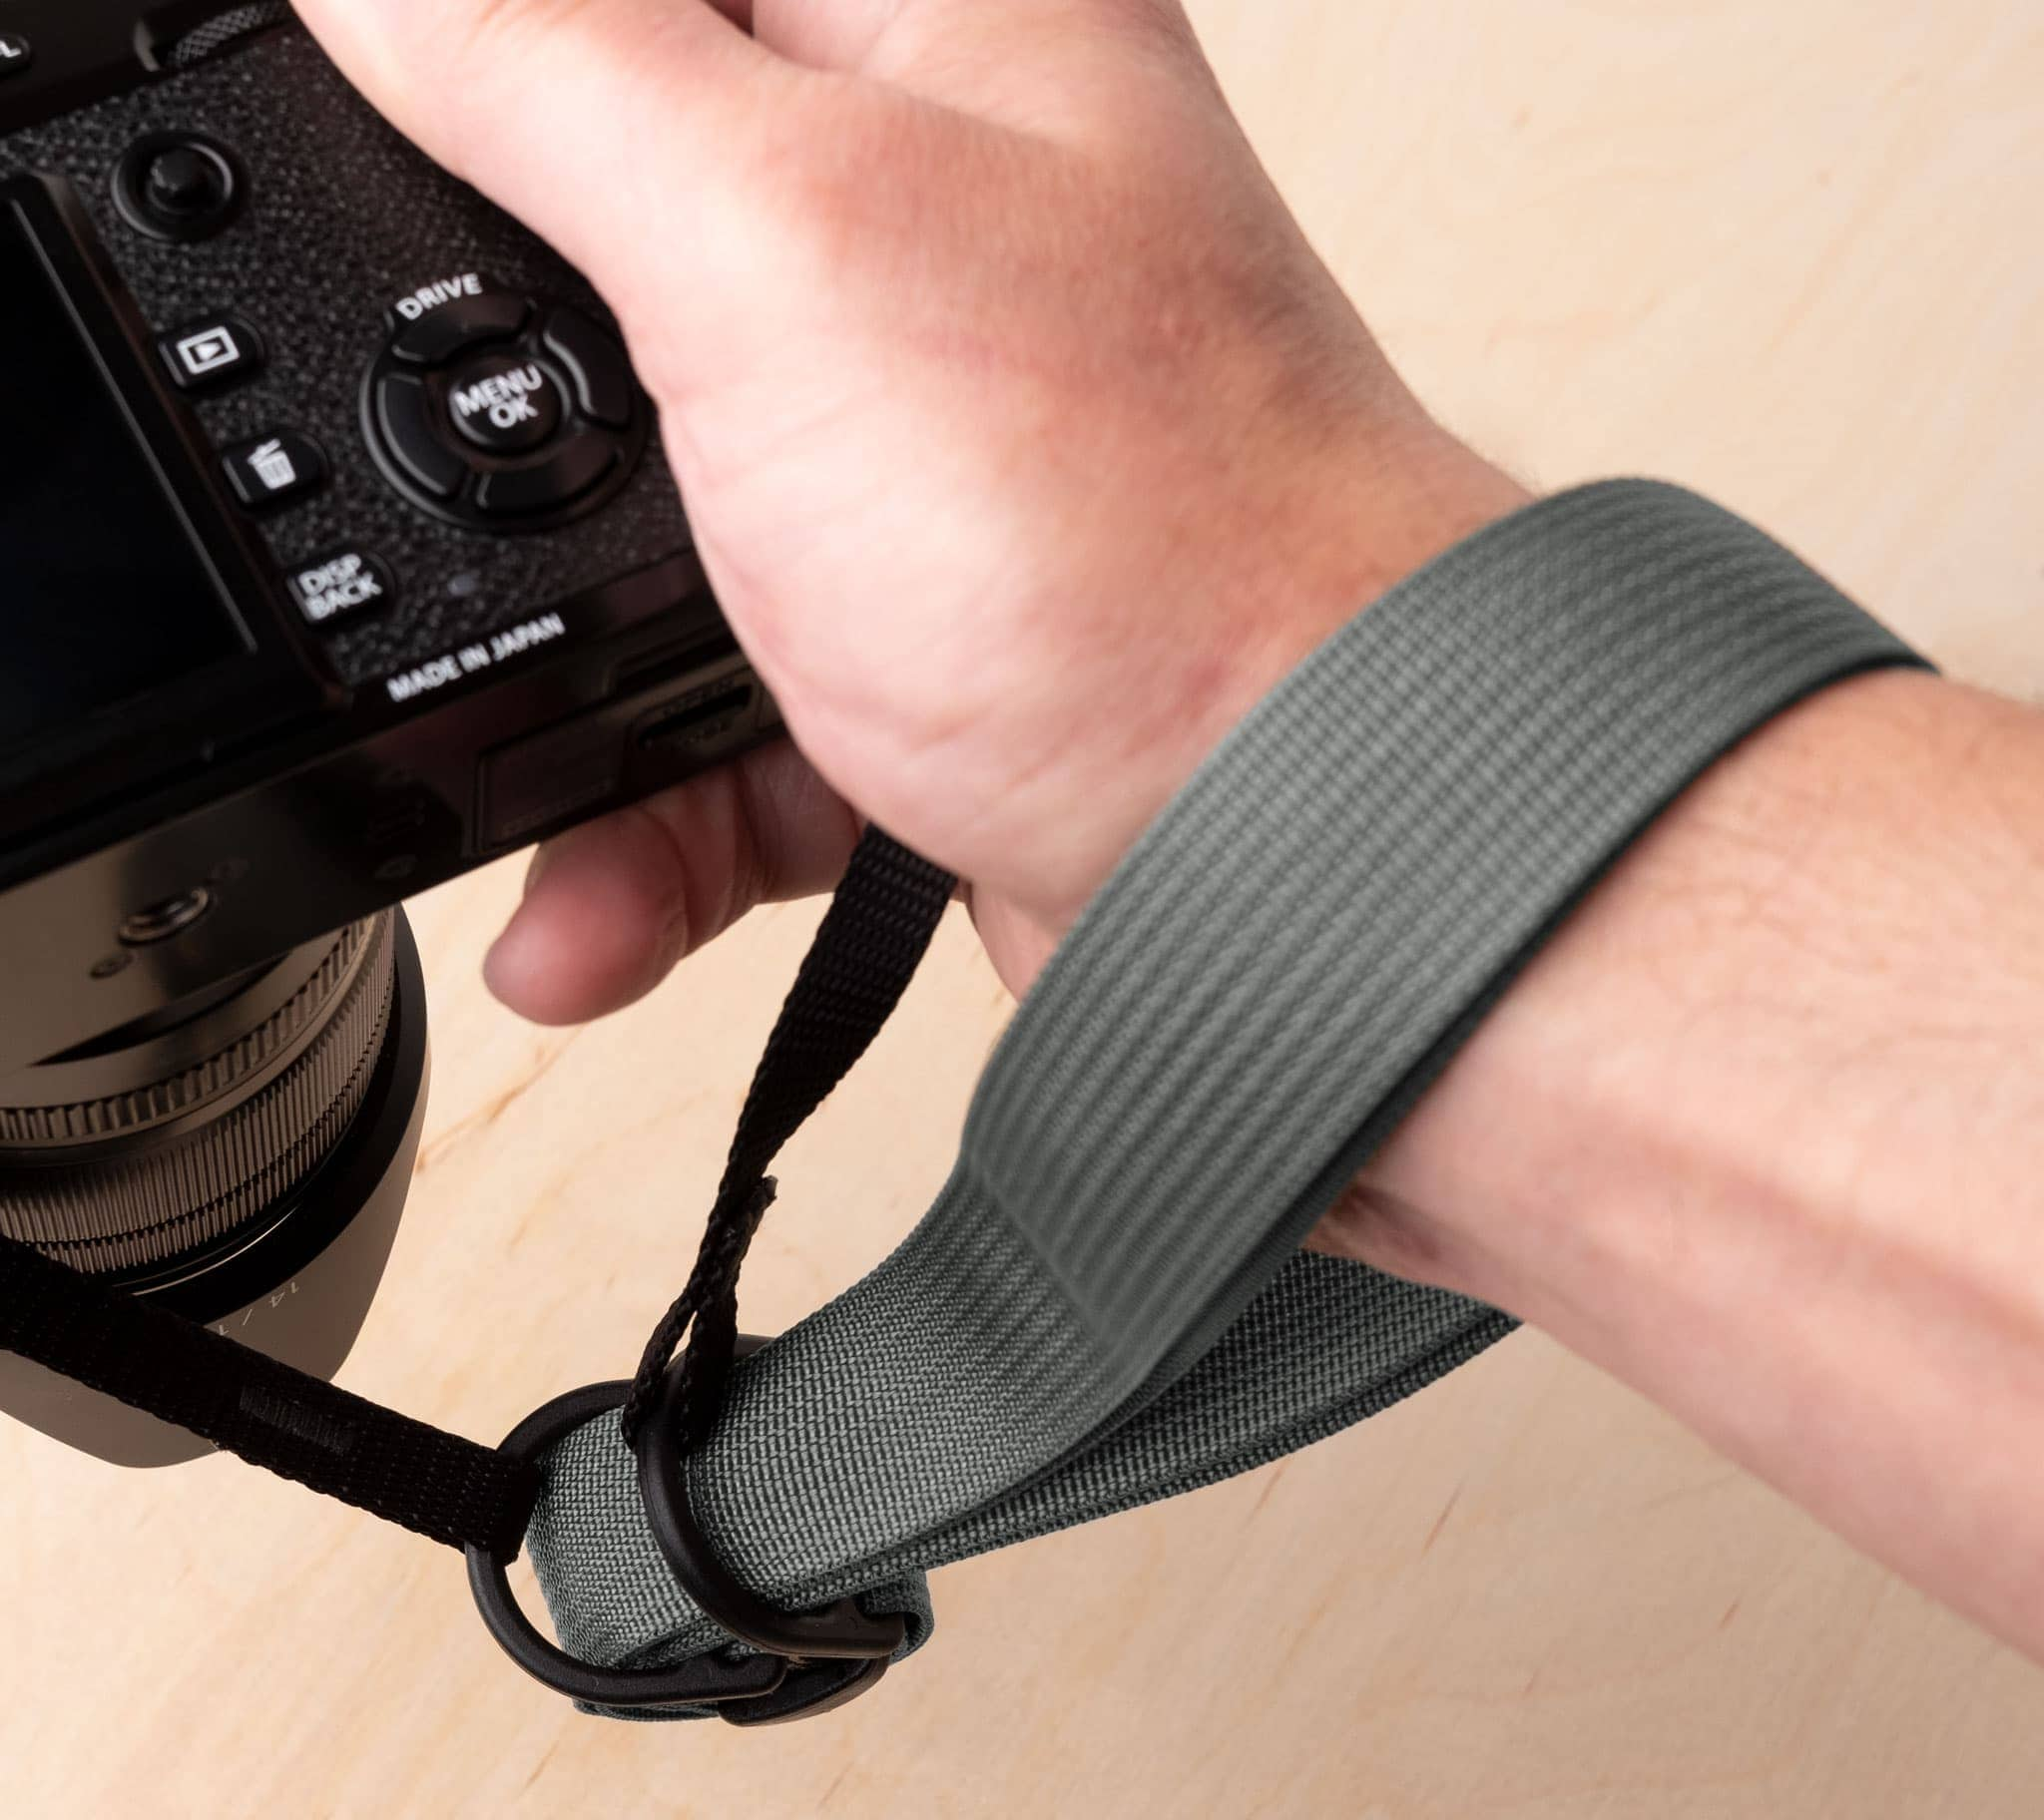 F1 camera strap as an improvised wrist strap